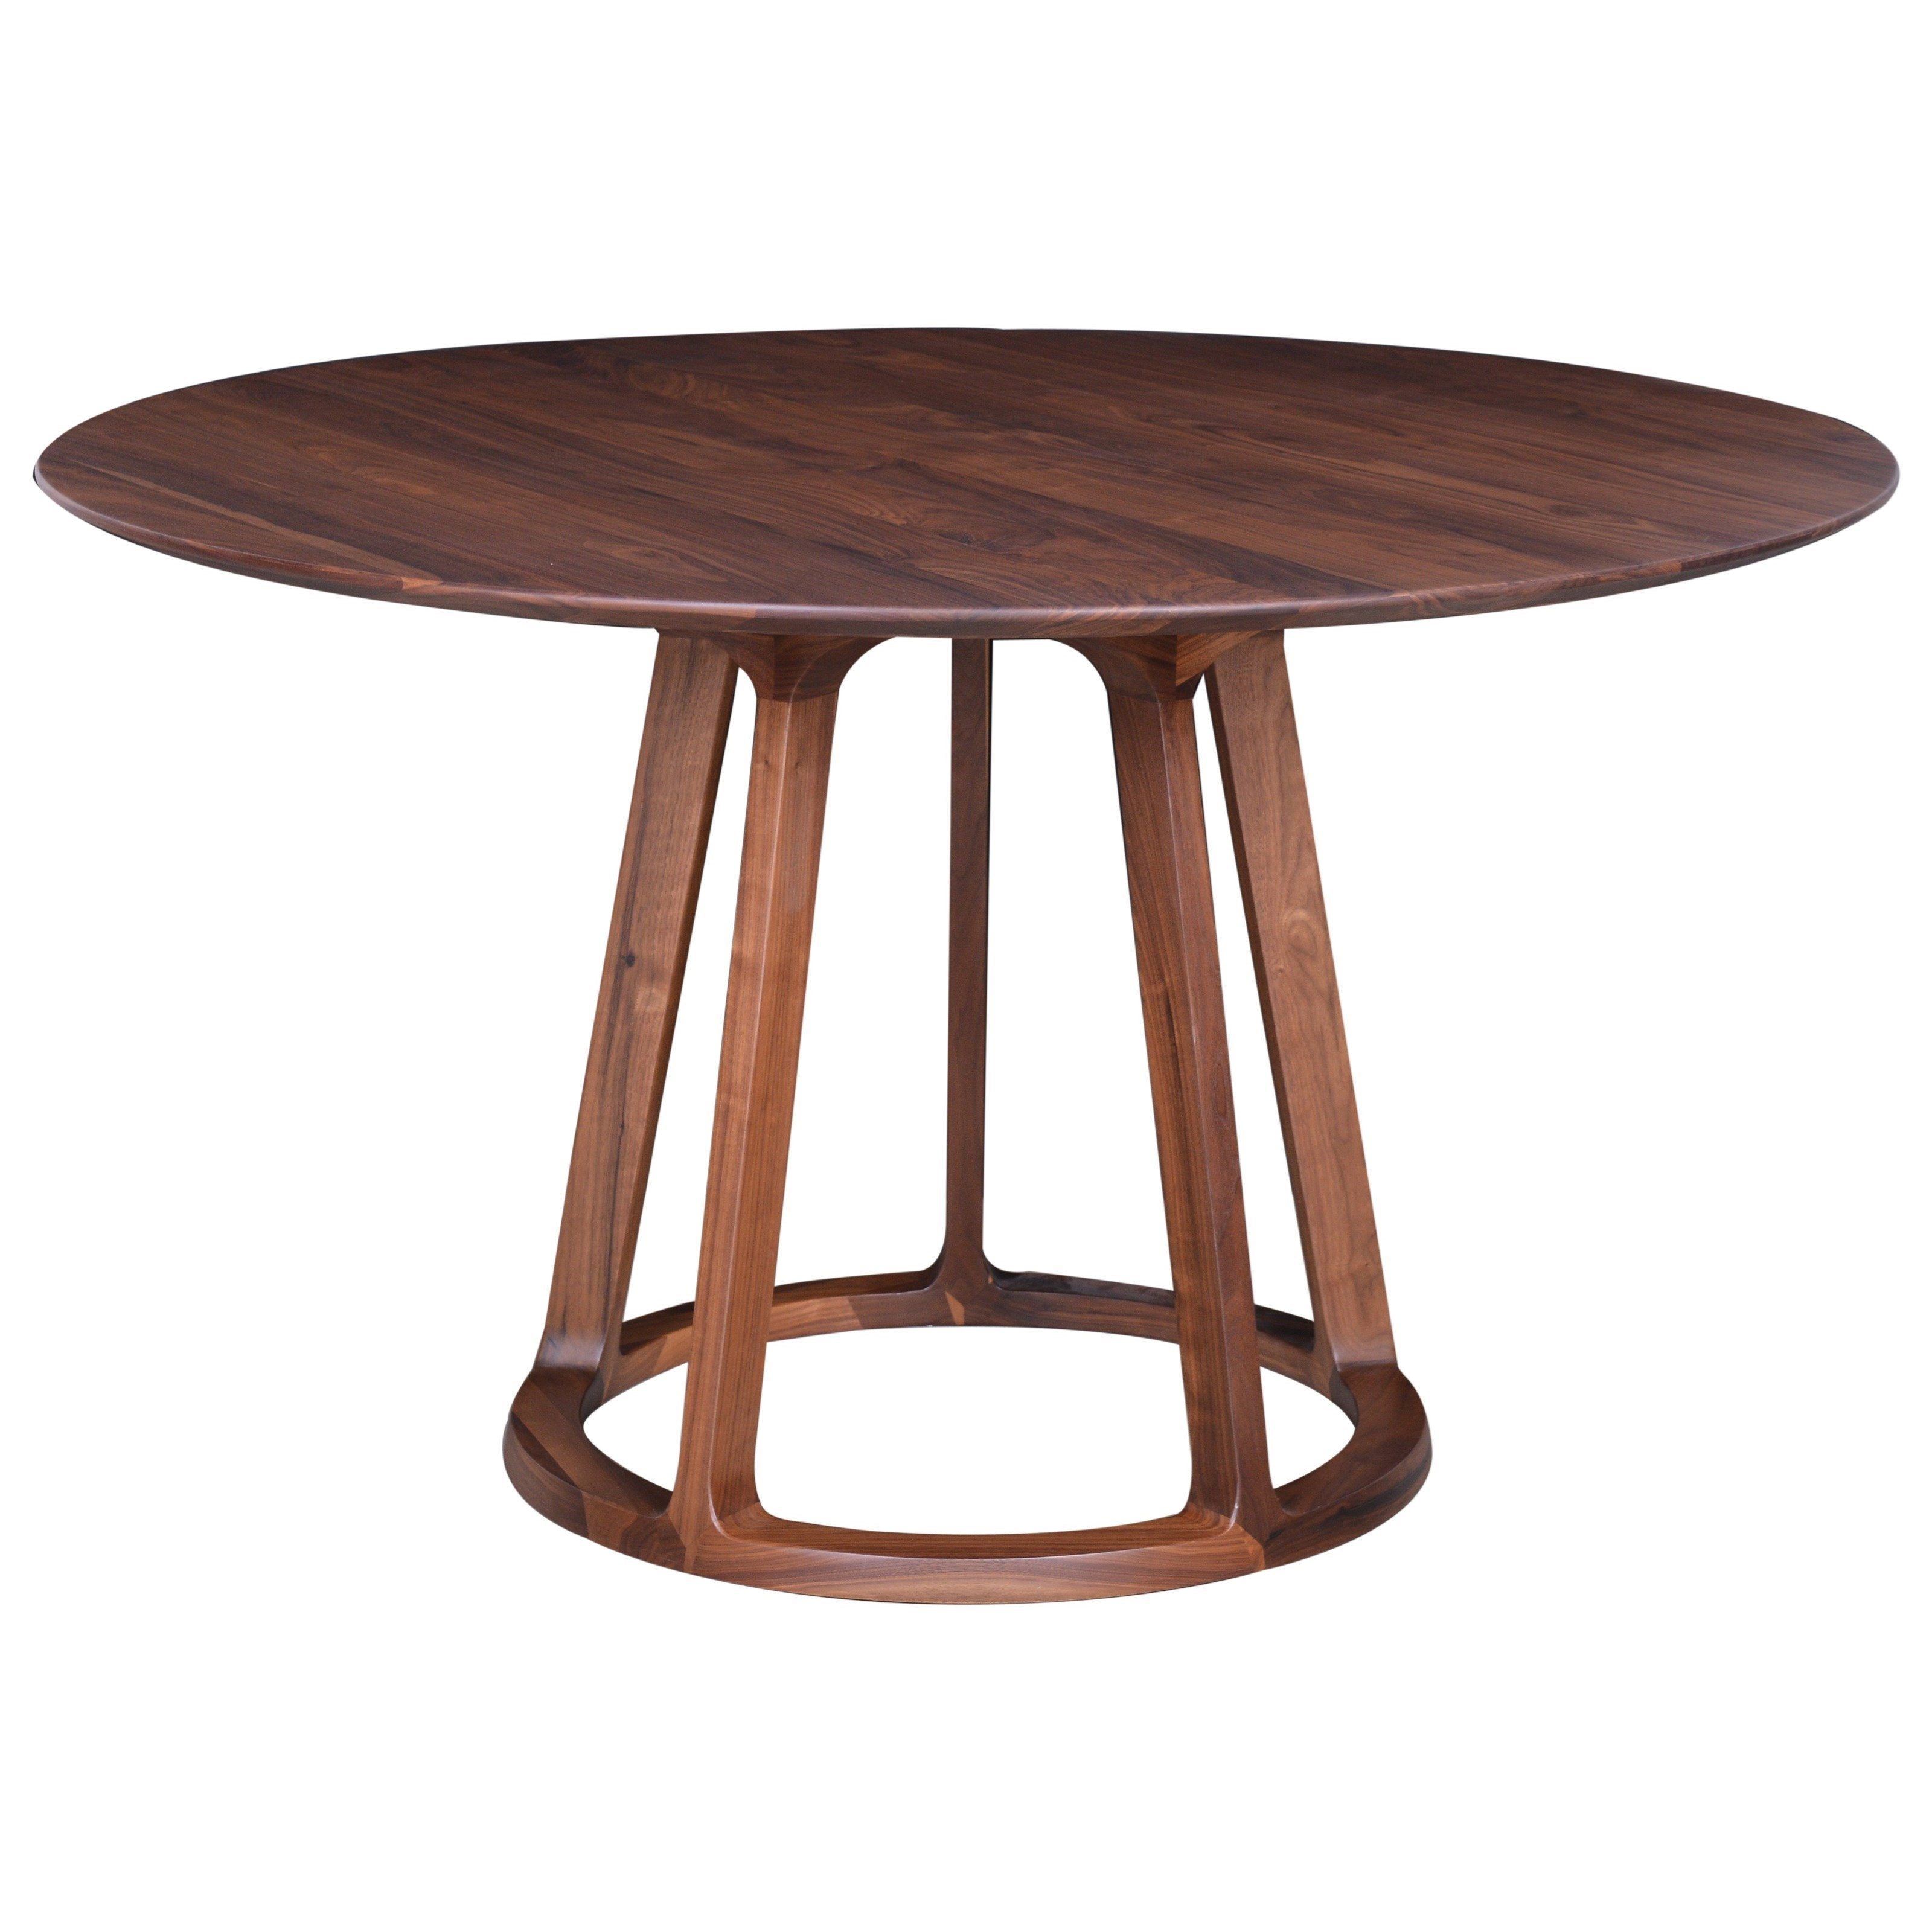 Aldo  Round Dining Table  Walnut   by Moe's Home Collection at Stoney Creek Furniture